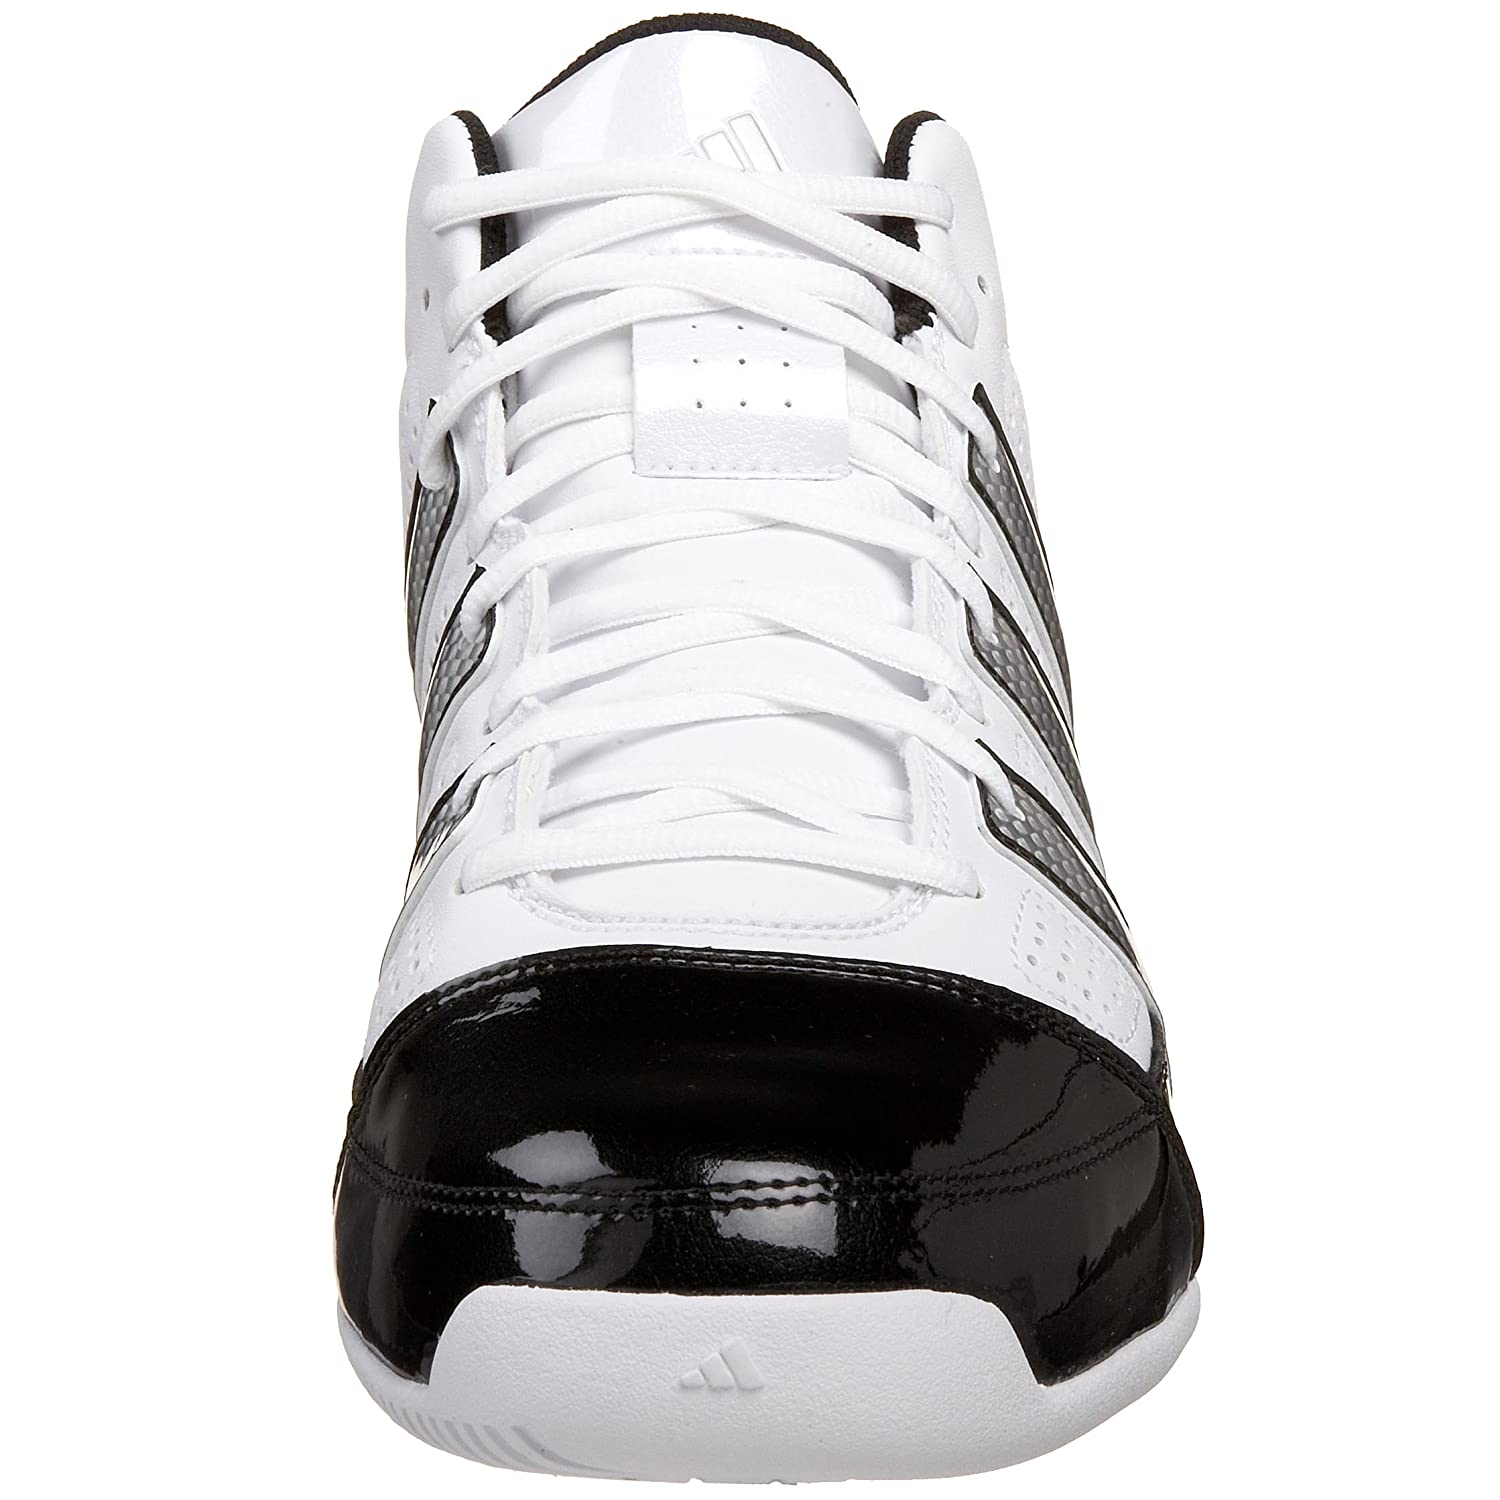 25f91251a Adidas - Commander Lite Td Mens Shoes In Running White  Metallic Silver    Black